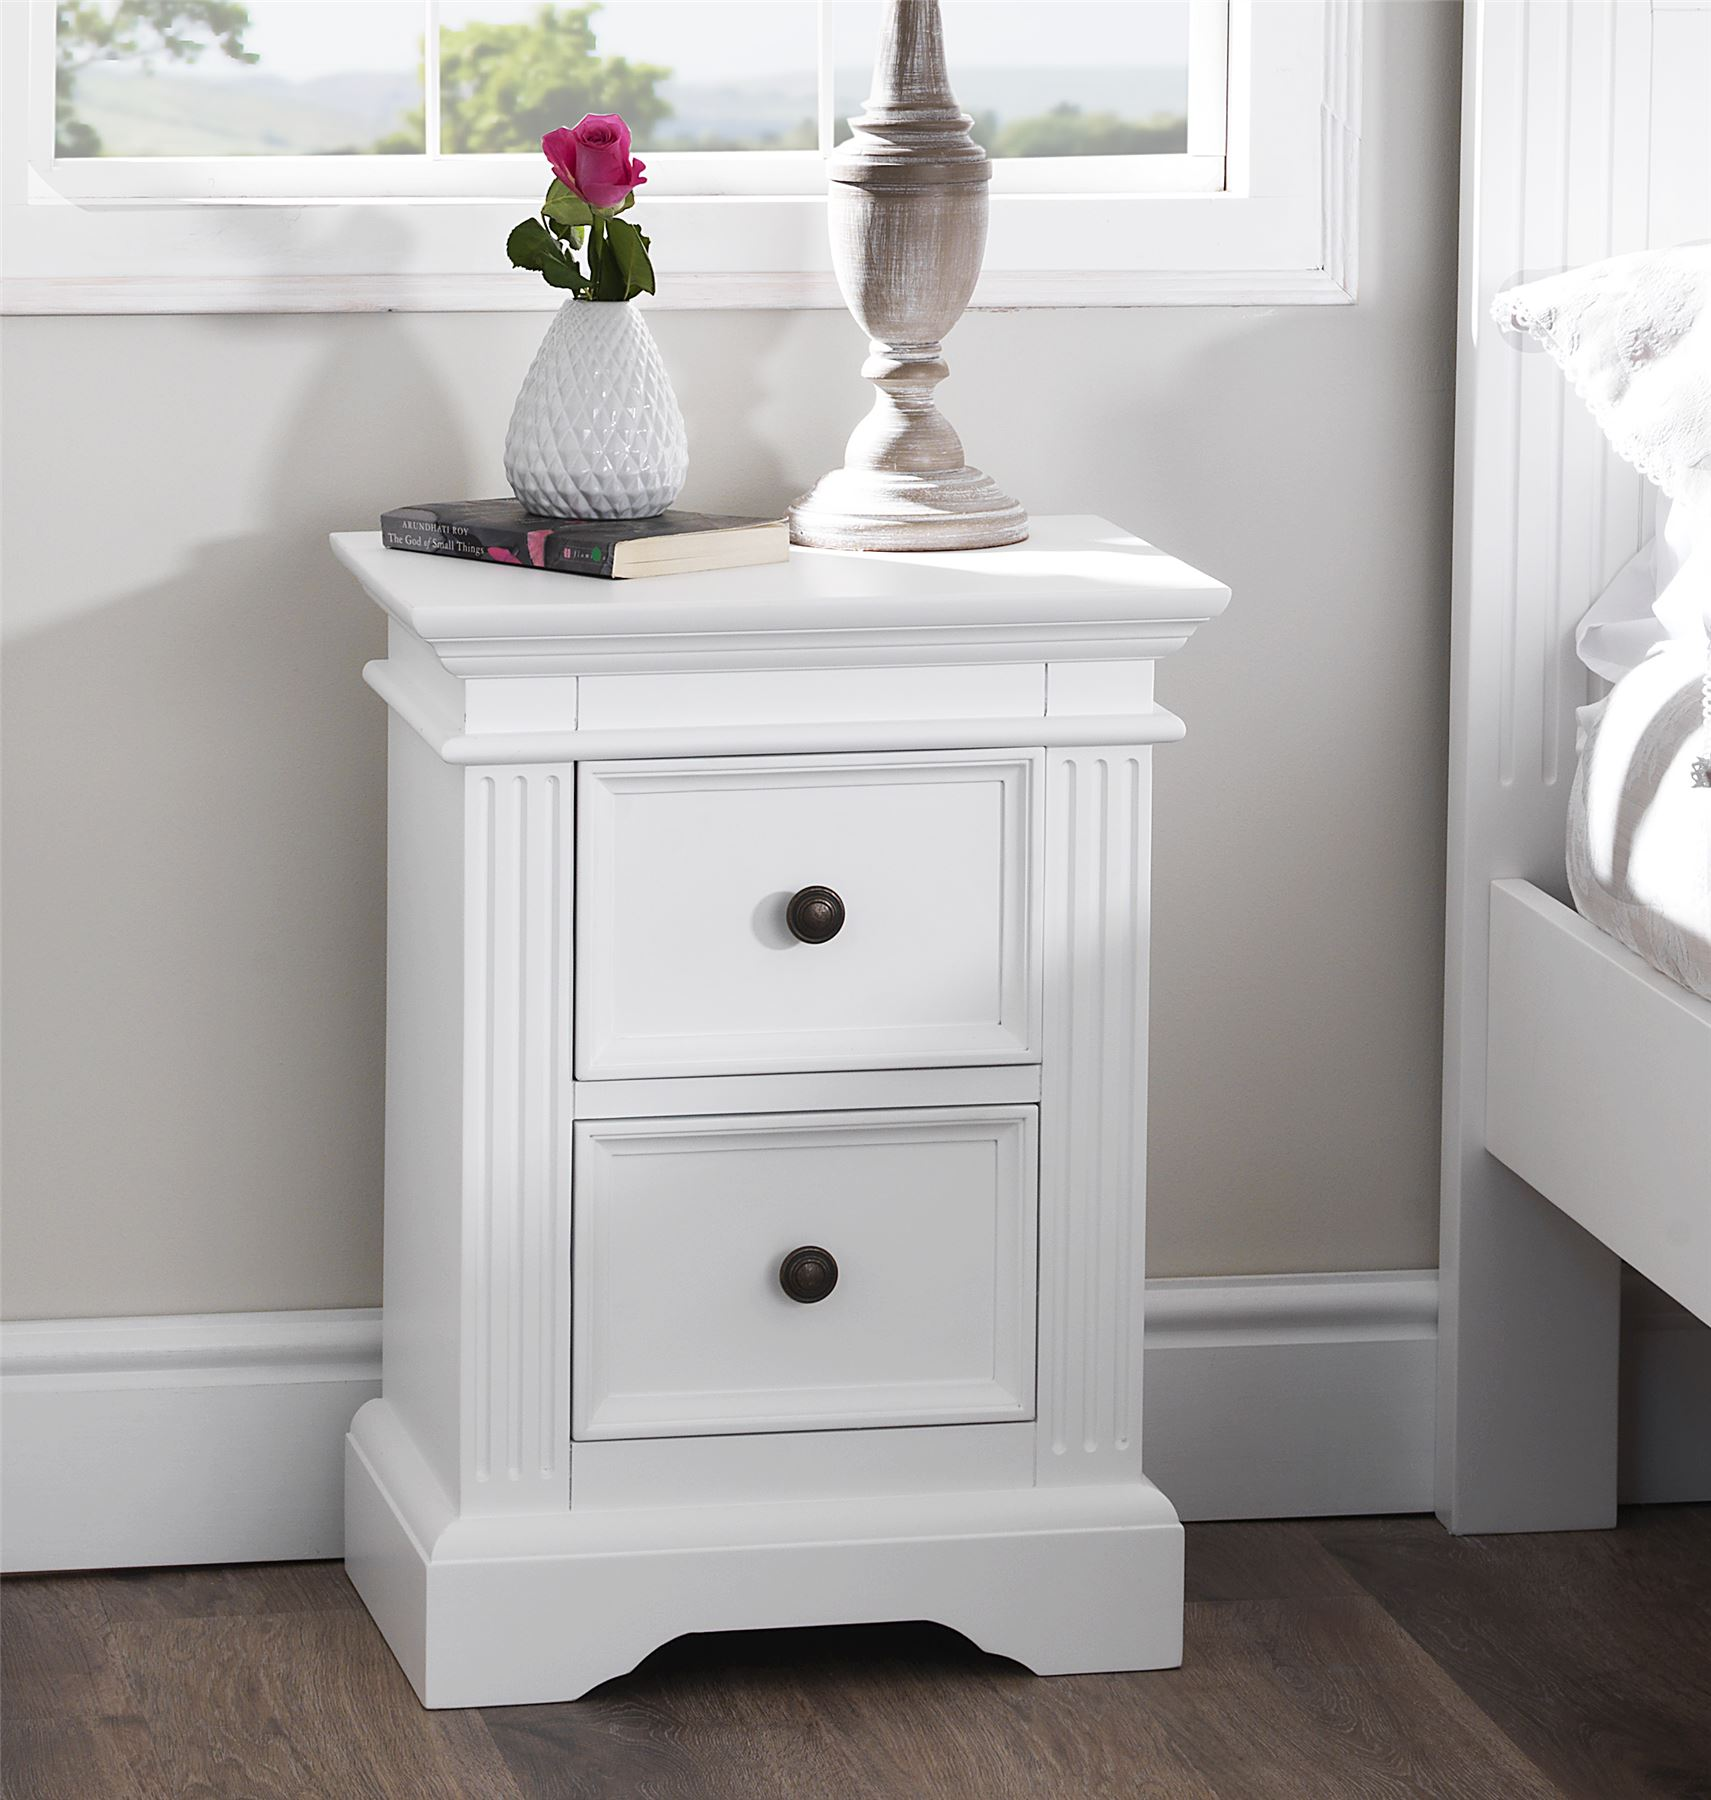 Gainsborough white bedroom furniture bedside cabinetschest of drawerswardrobe ebay